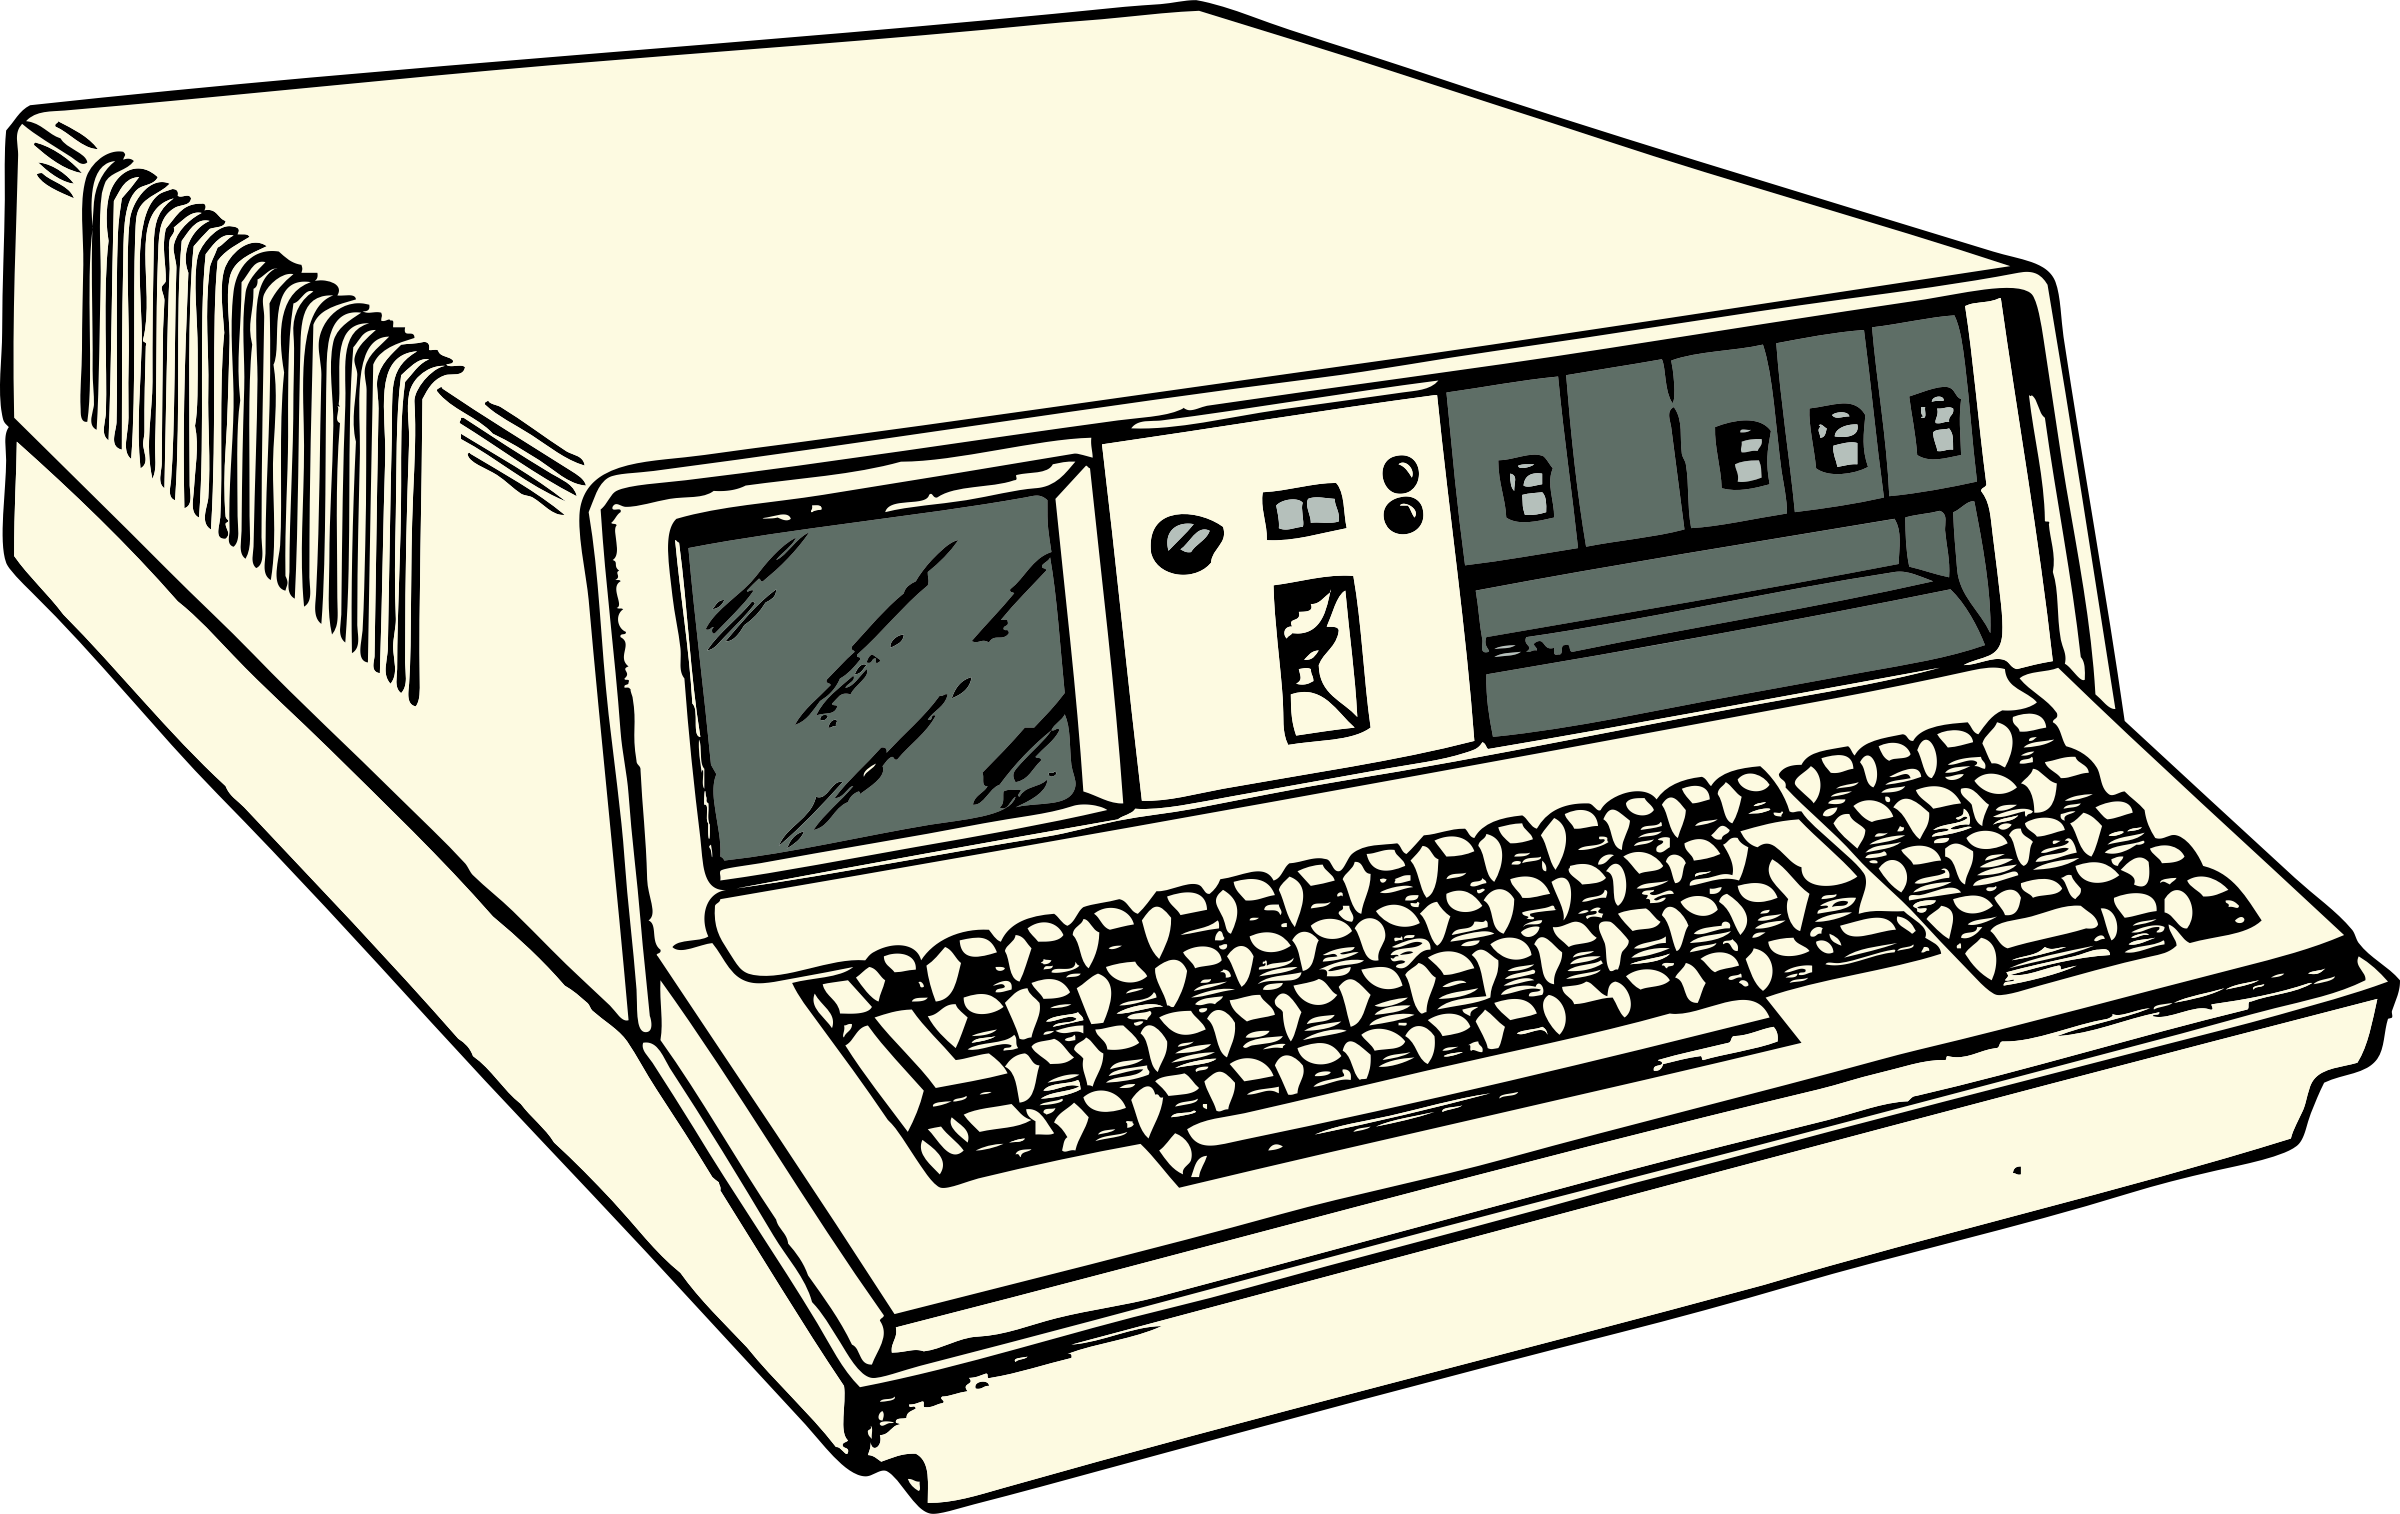 Pc clipart old computer. S era portable big